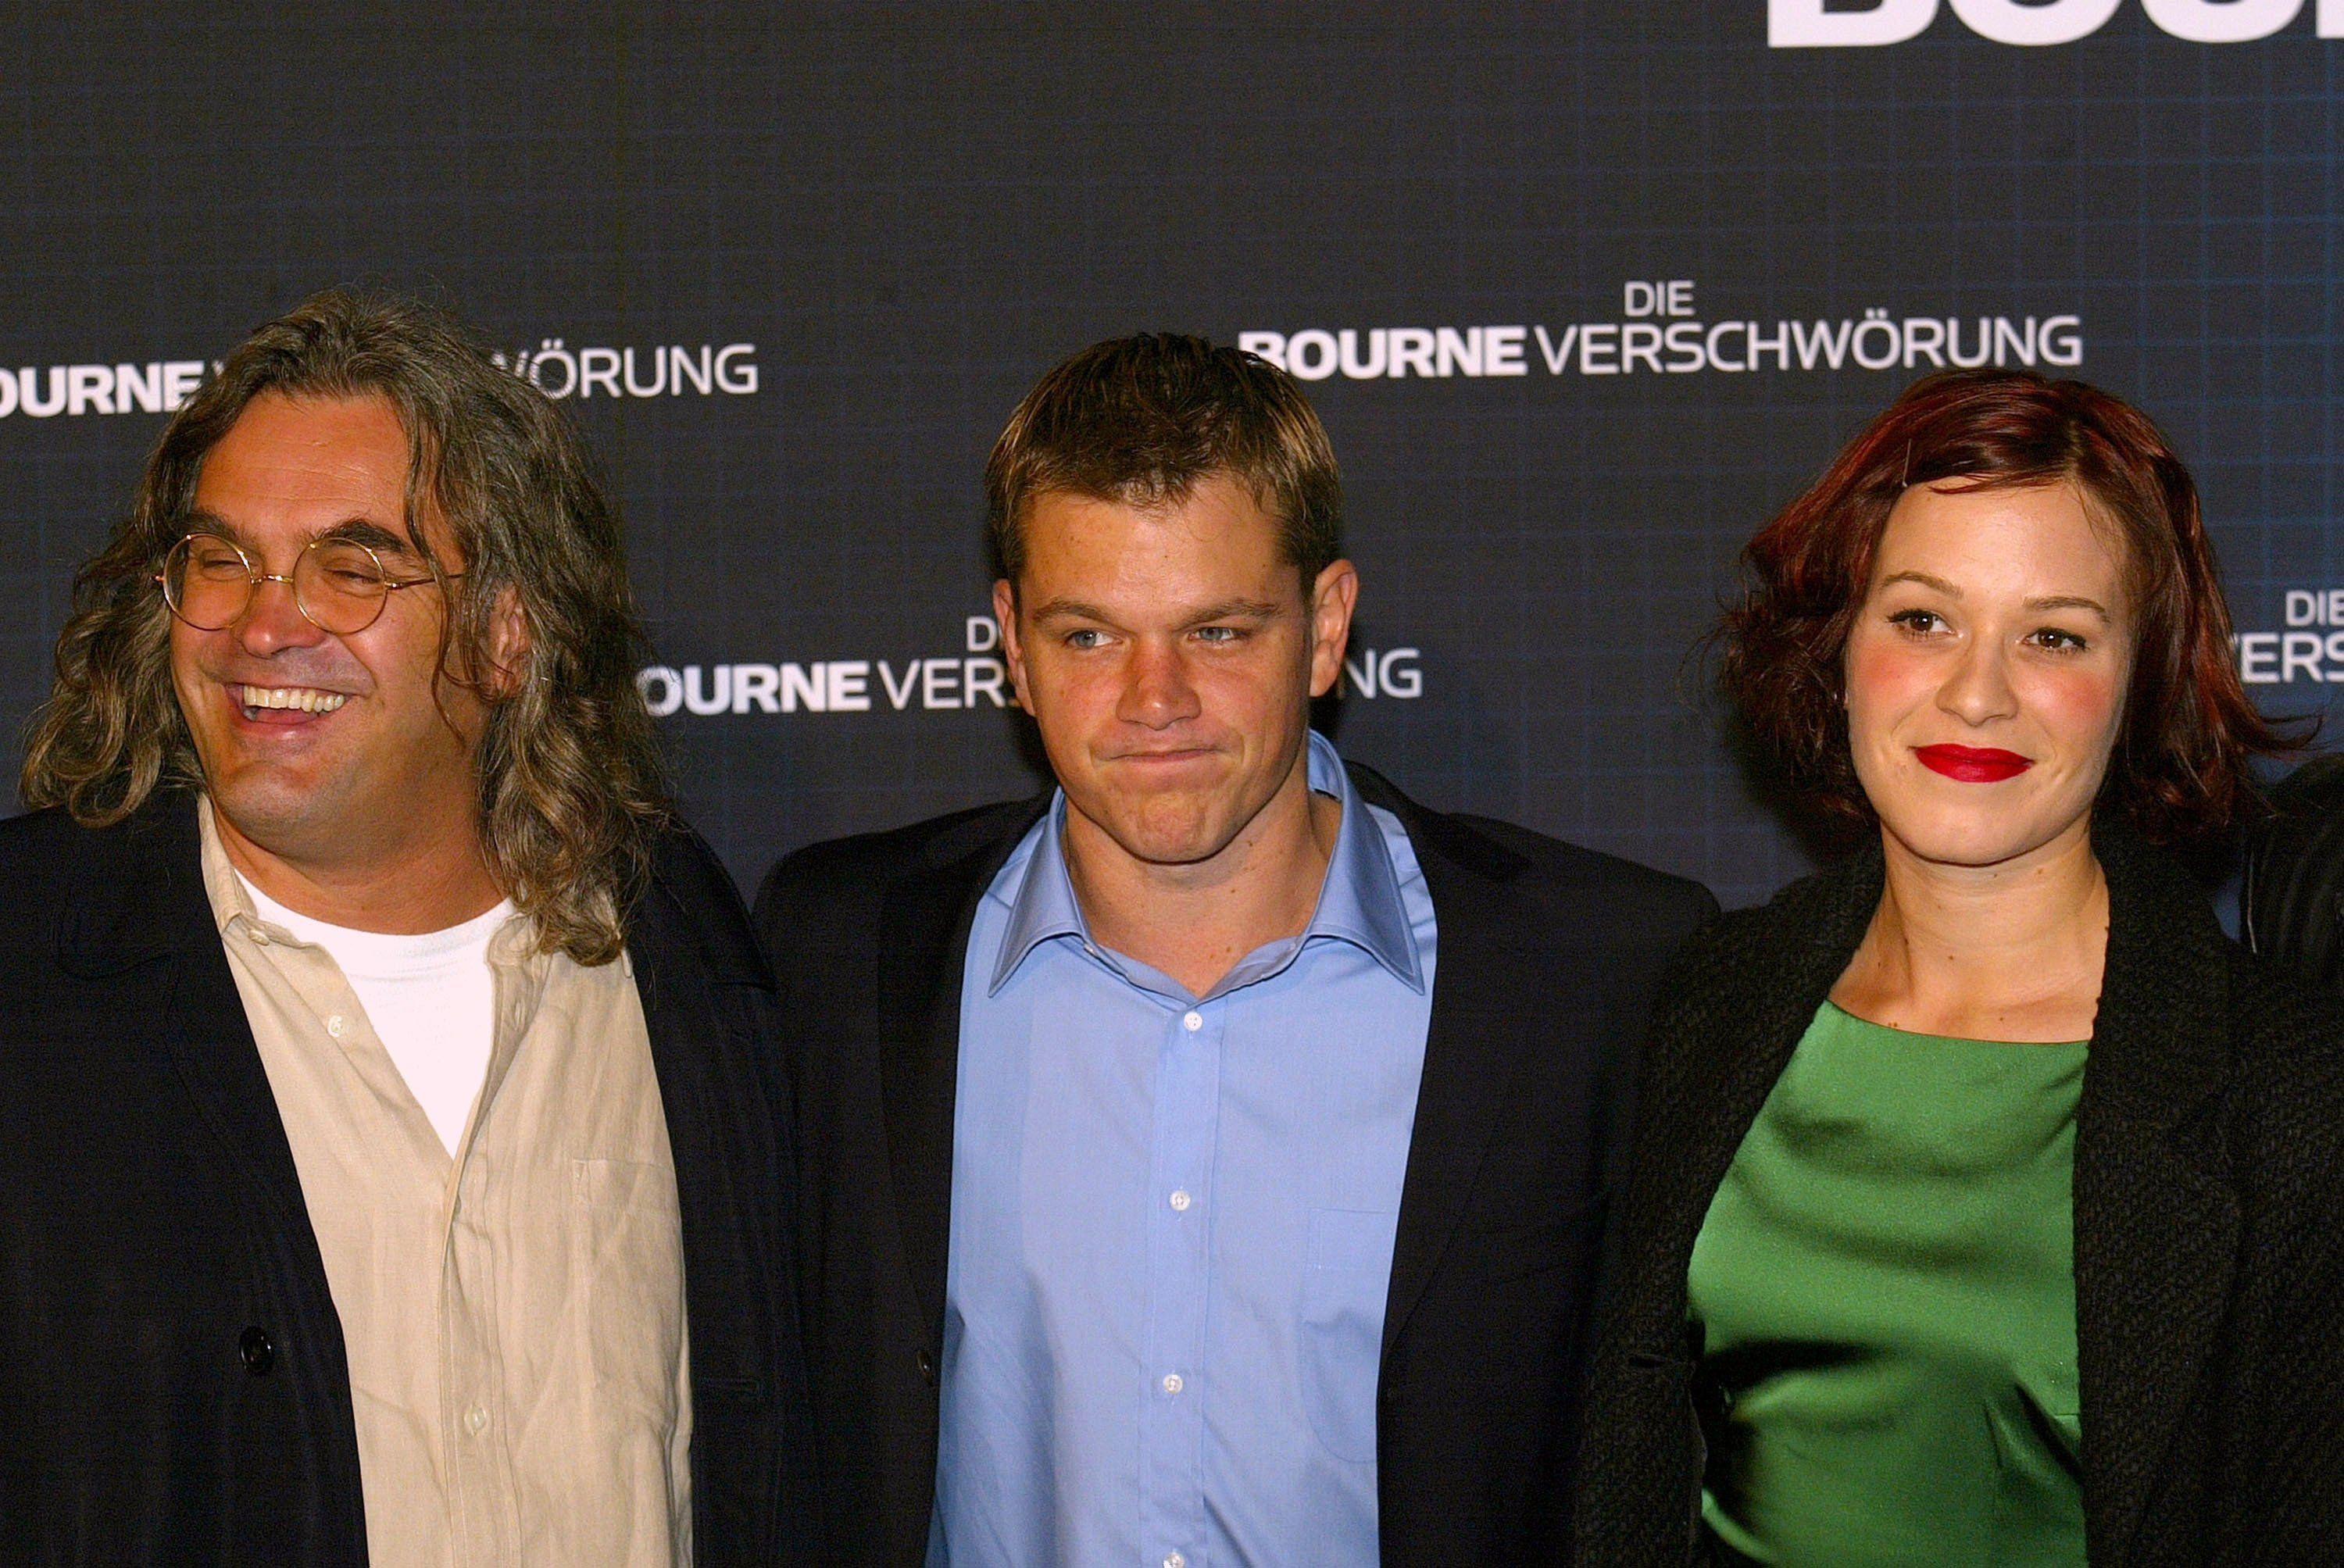 Director Paul Greengrass (L), actor Matt Damon (C) and actress Franka Potente pose for a photo during the premiere of the film 'The Bourne Supremacy' in Berlin, Germany in 2004. (Getty Images)